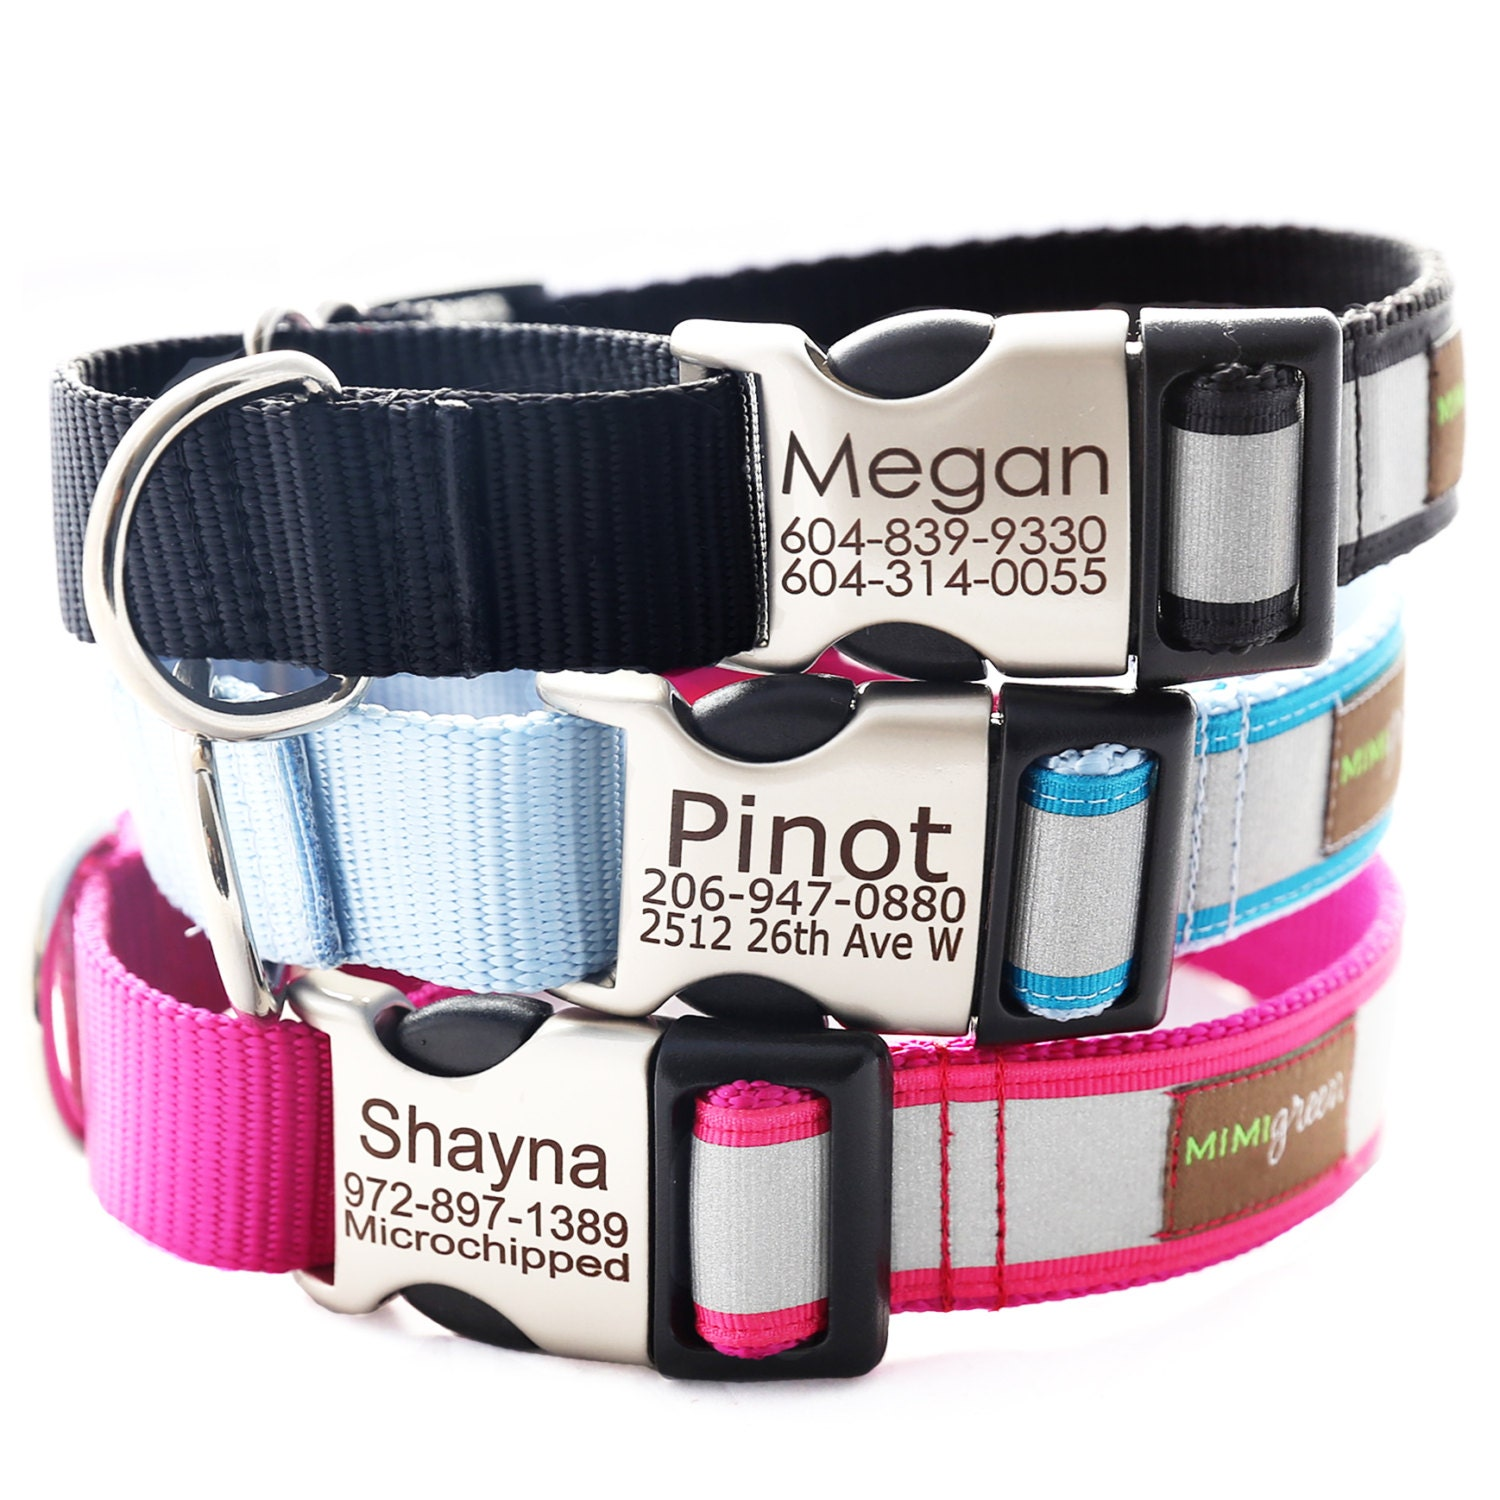 Personalized Reflective Martingale Dog Collar With Laser